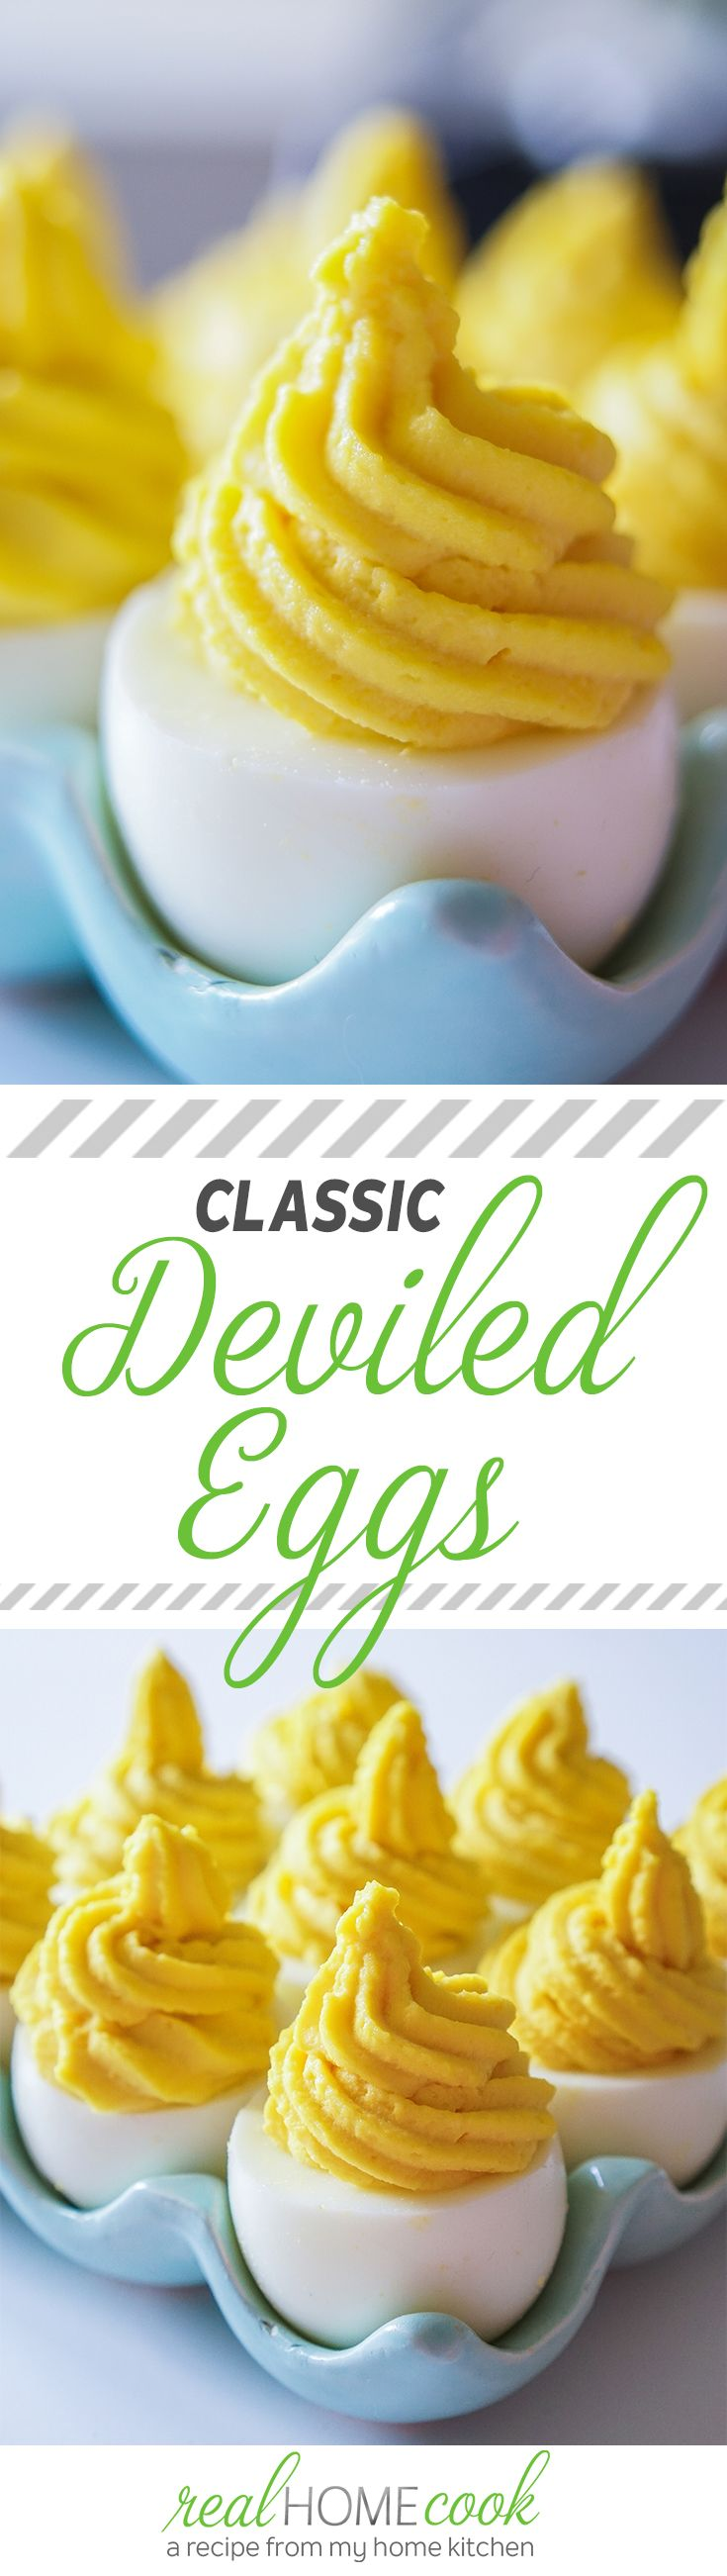 The perfect Classic Deviled Eggs | Appetizer Recipe